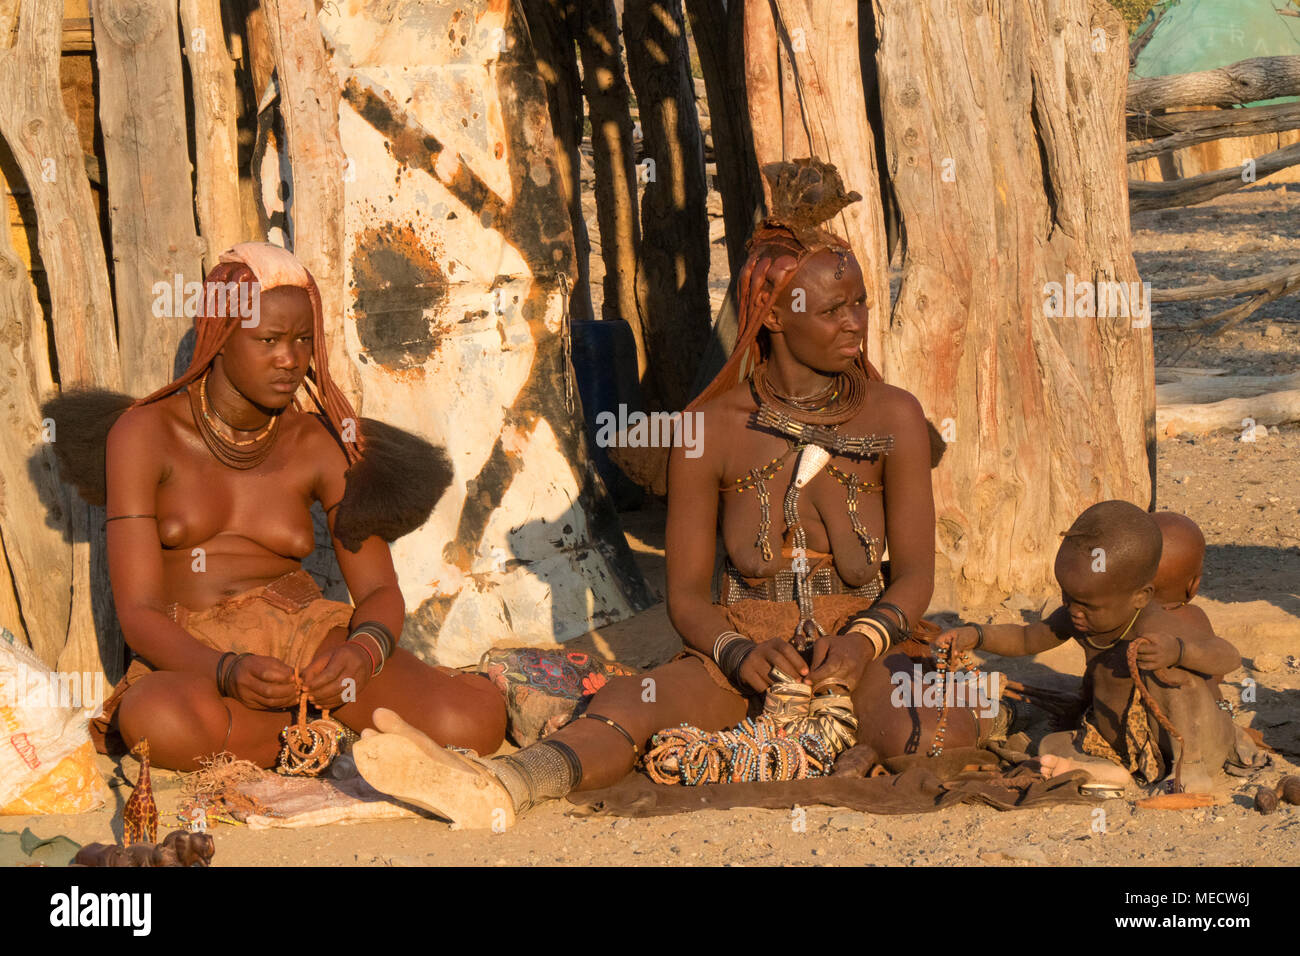 Himba people, Namibia- people siting near the huts in the village - Stock Image